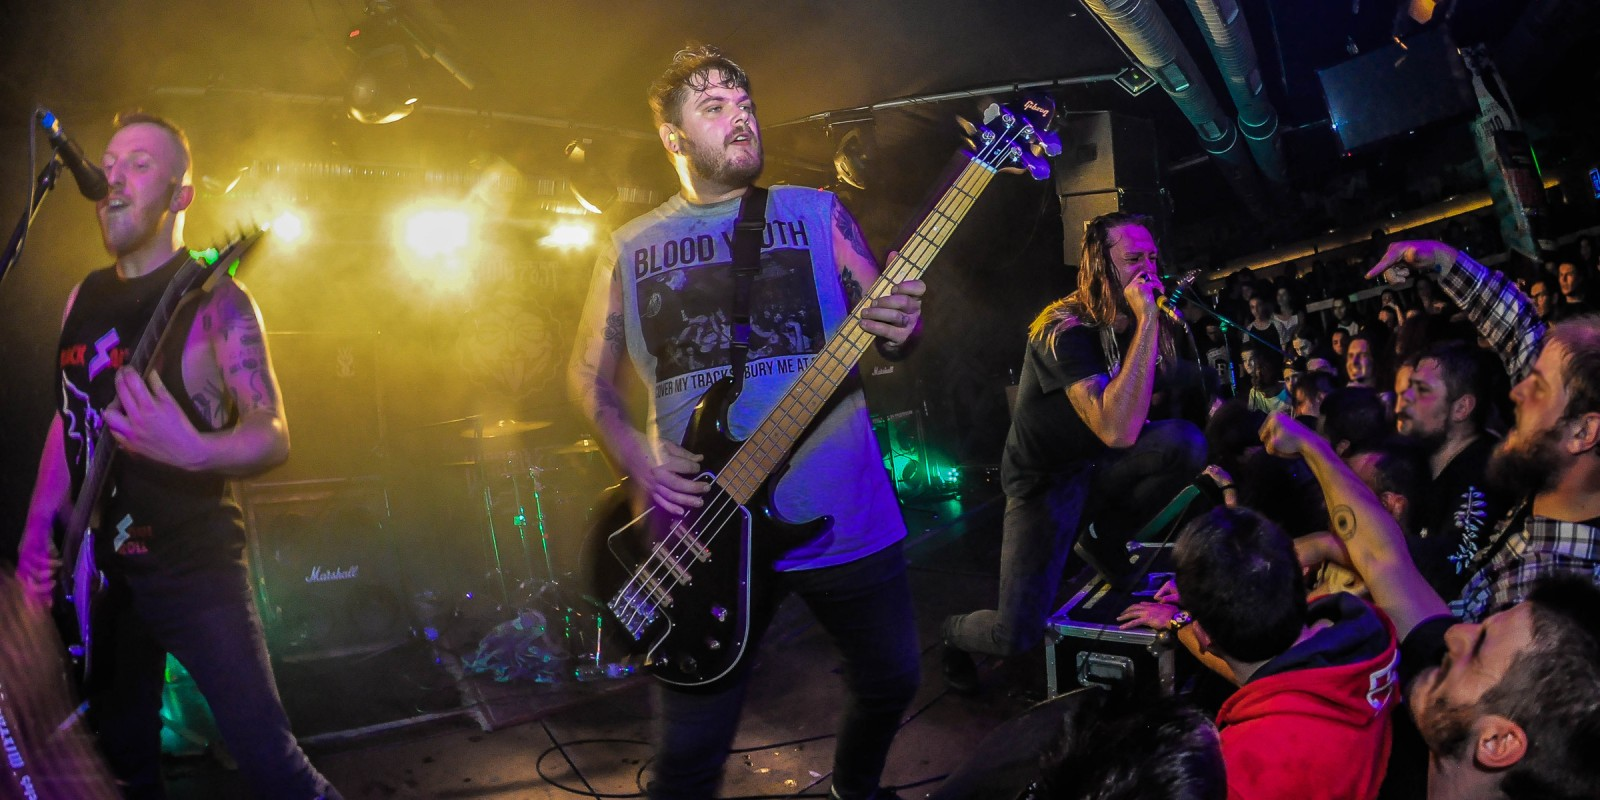 The UK band While She Sleeps had a show in Sofia, Bulgaria as park of their Euro tour.